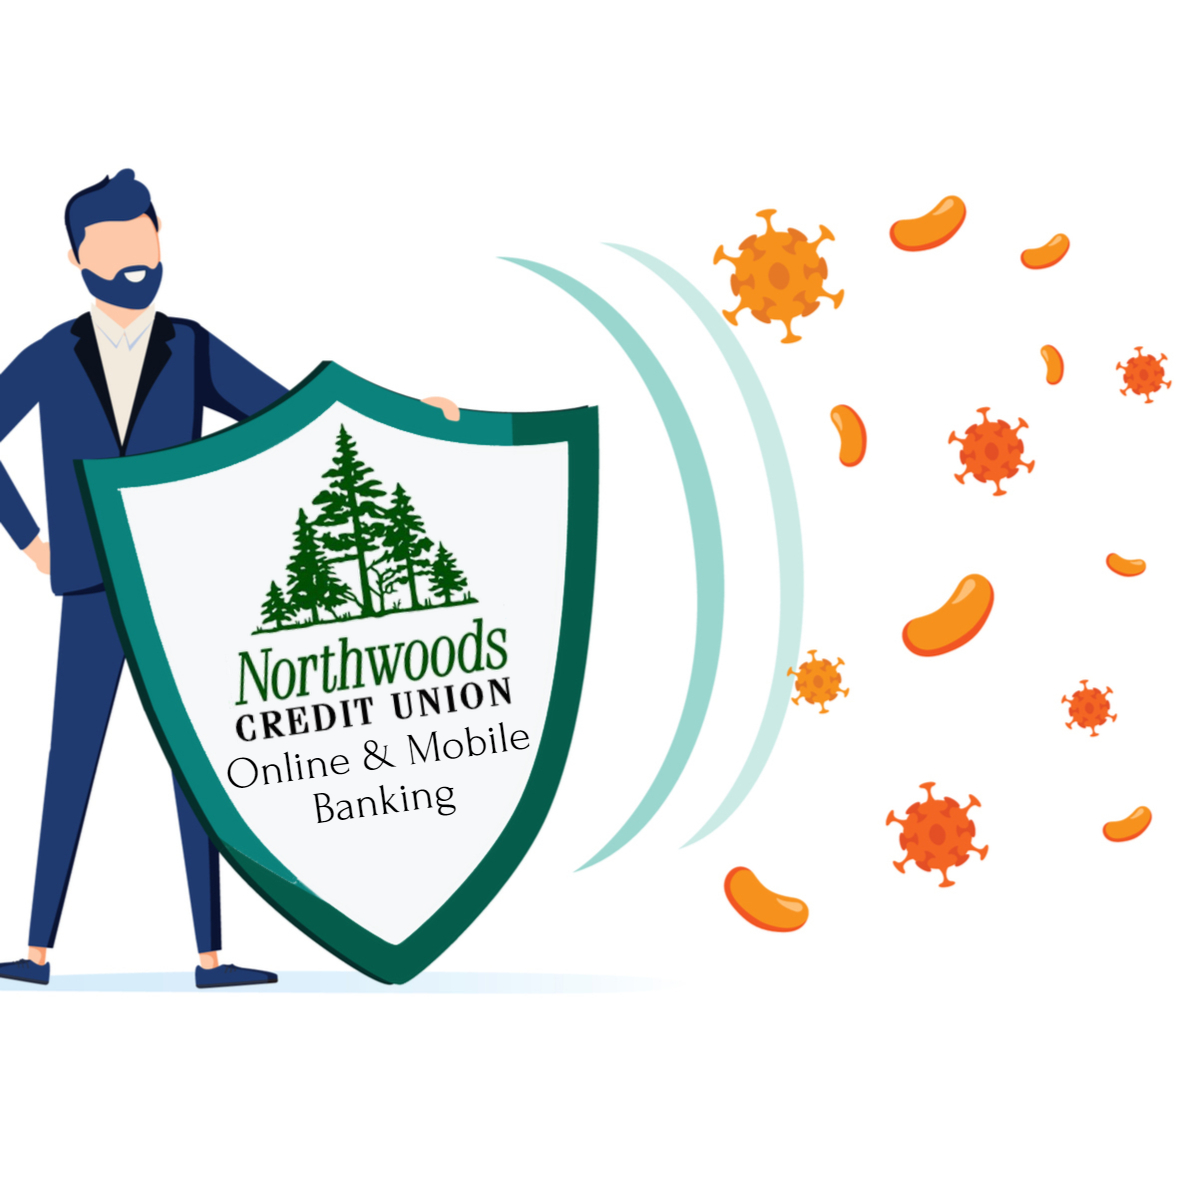 Illustration of a man holding a shield that has Northwoods Credit Union Online and Mobile Banking on it, defending against germs